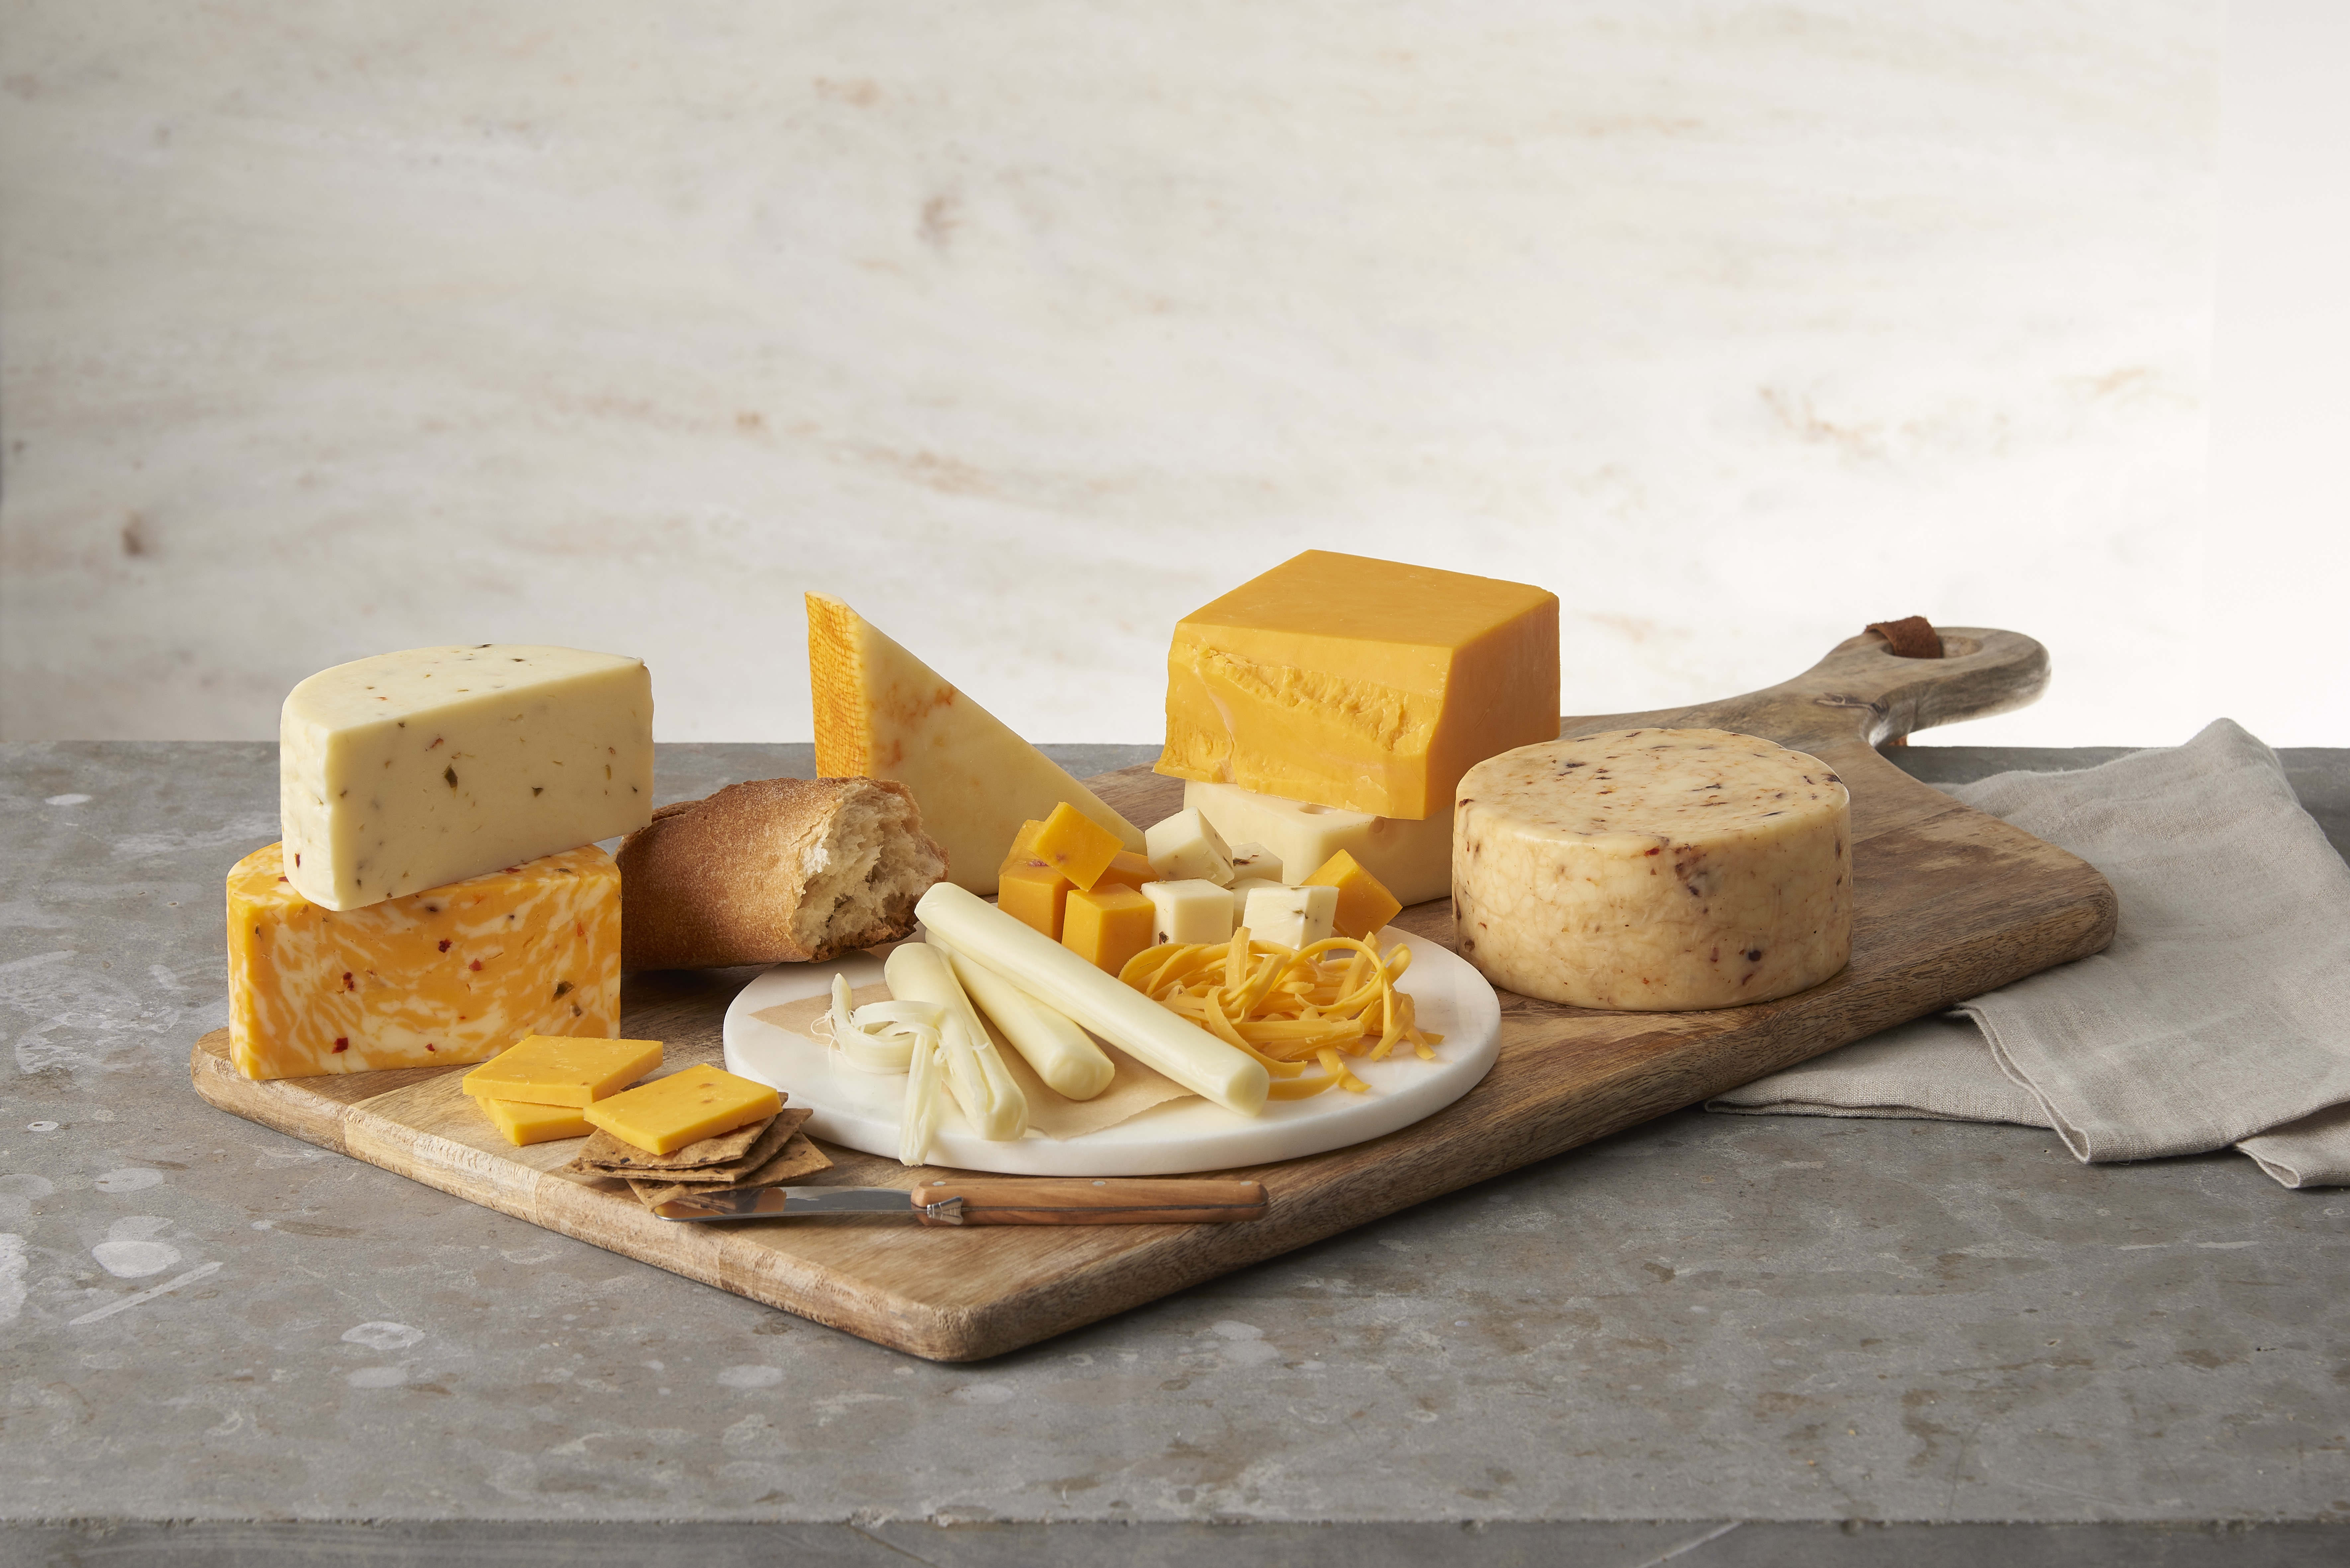 Selection of cheeses on a wooden board